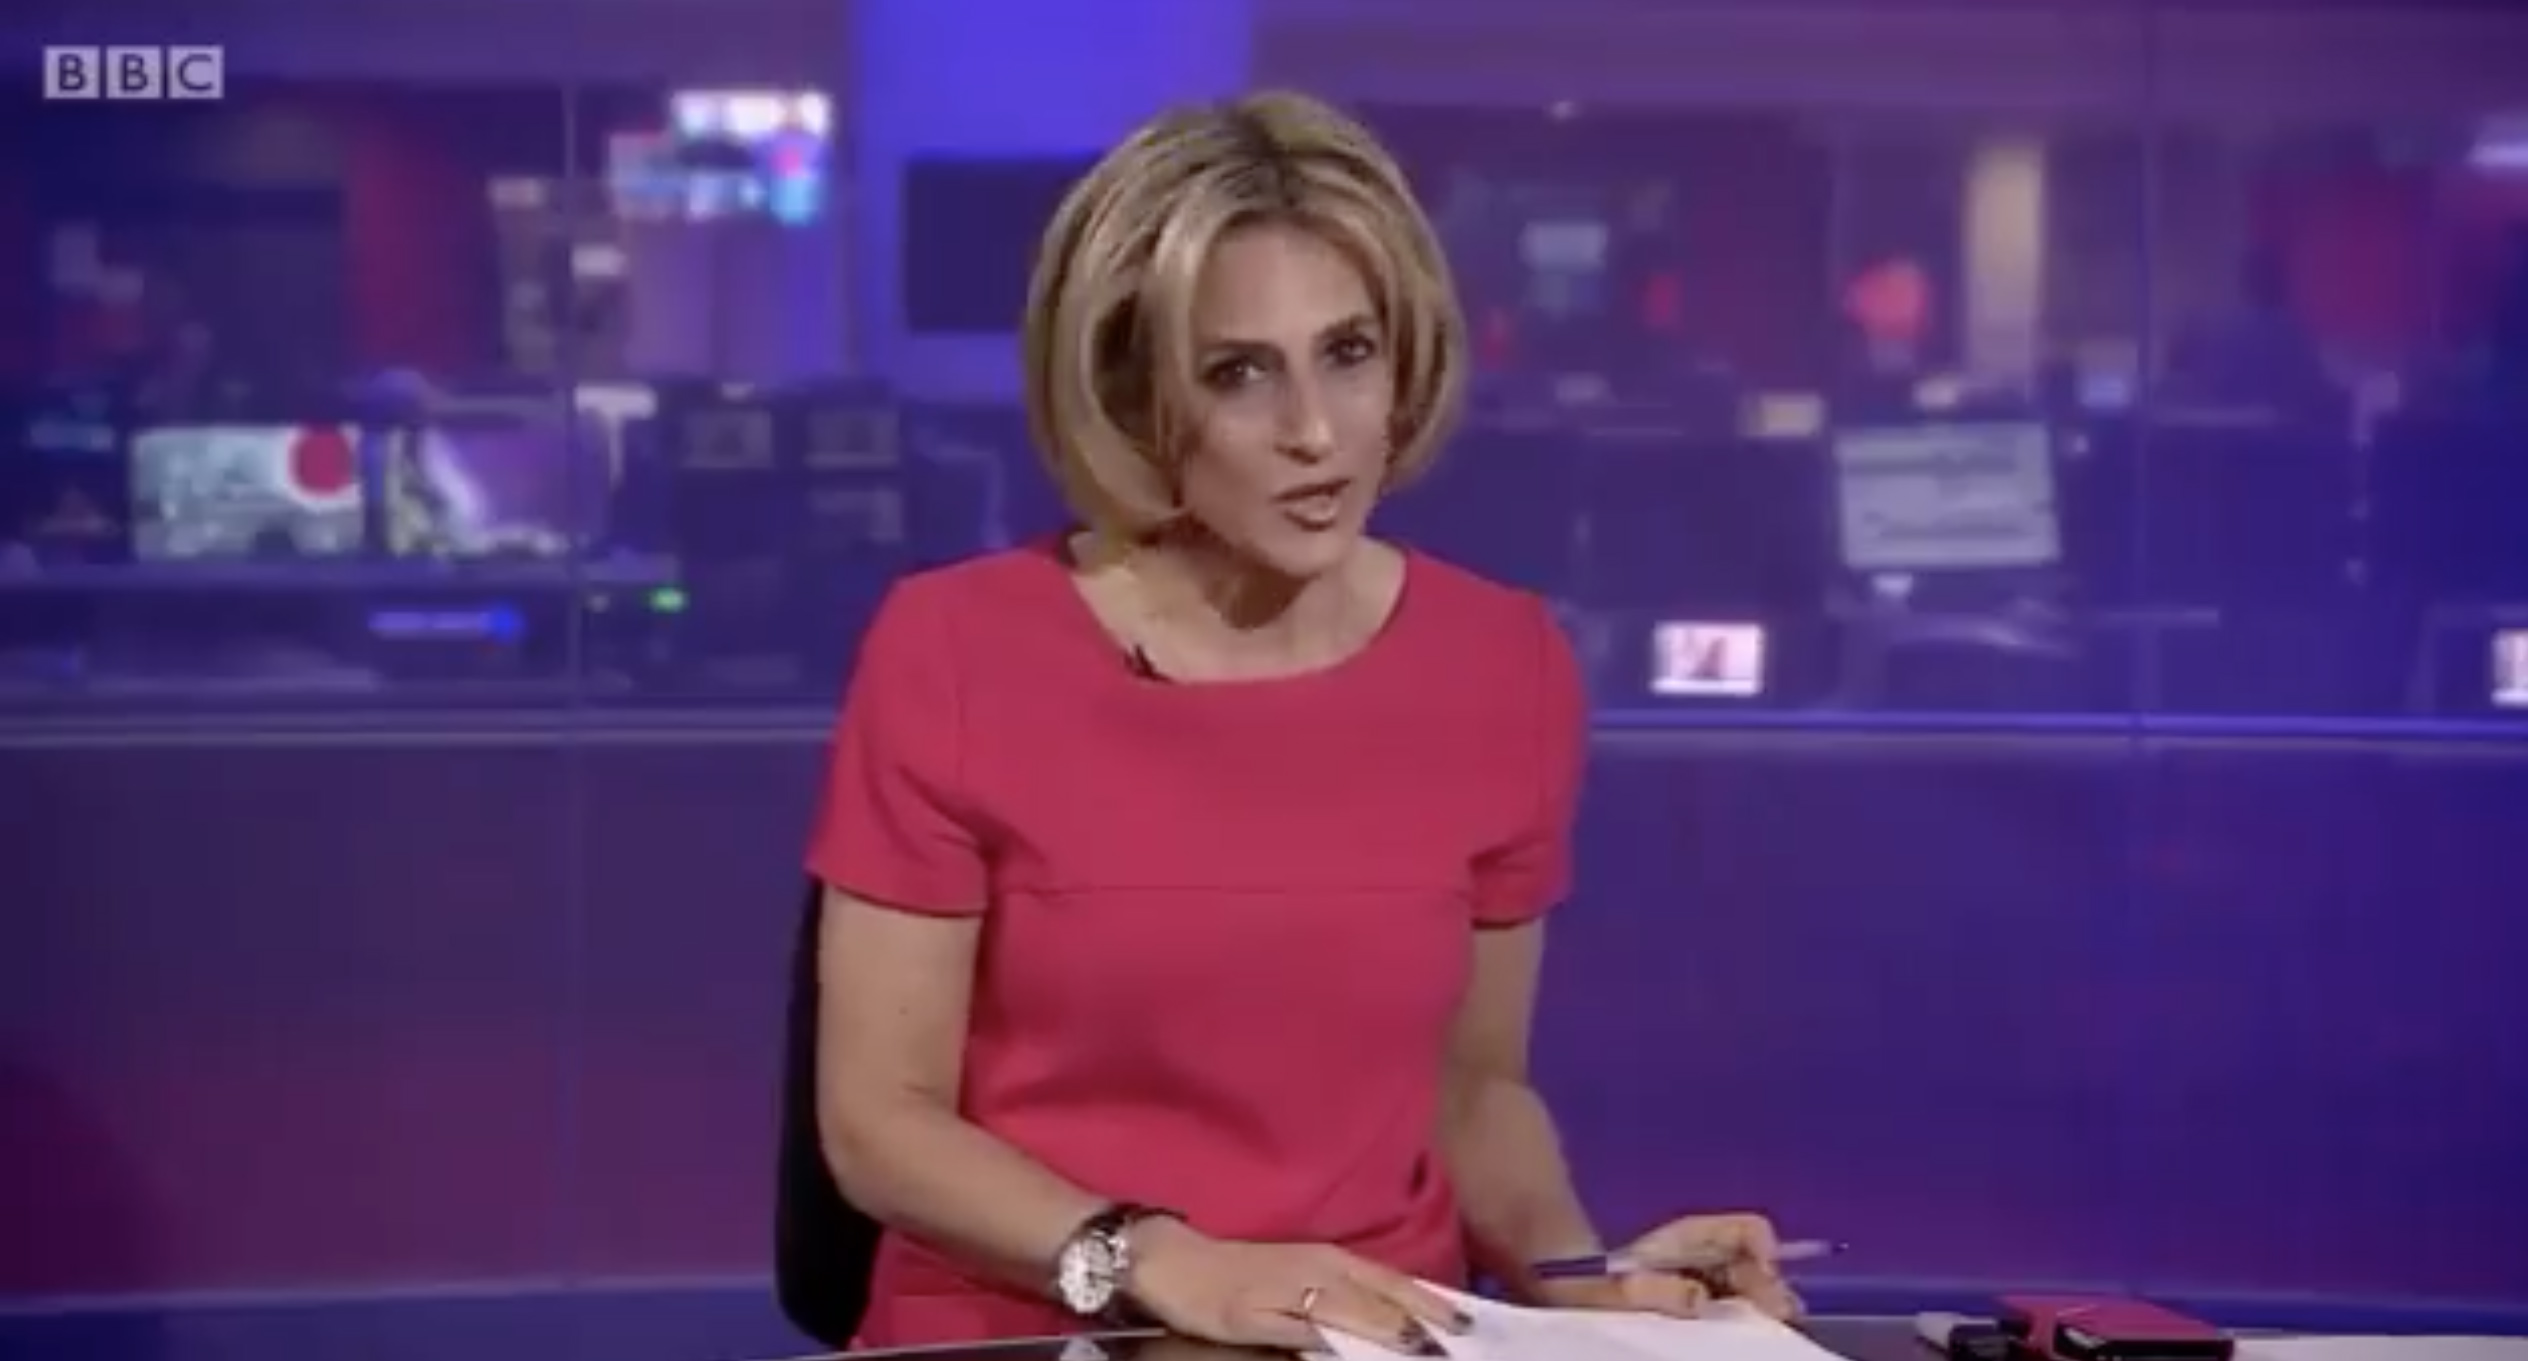 BBC host slams UK politicians for suggesting 'fighters' can survive Covid-19